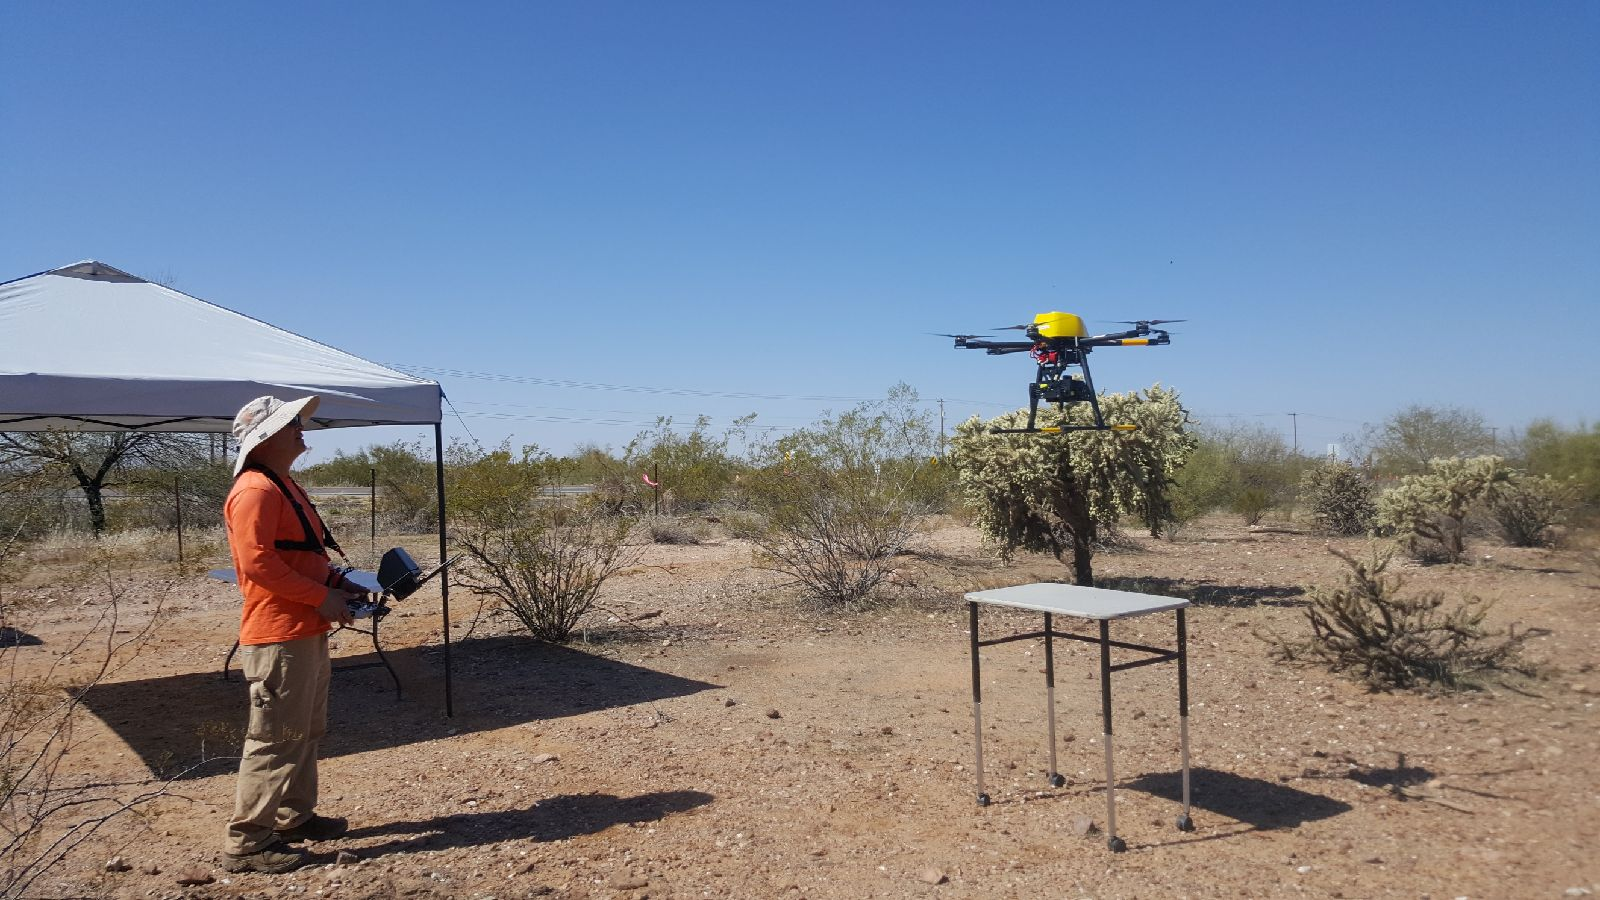 Employee launches drone in the desert.